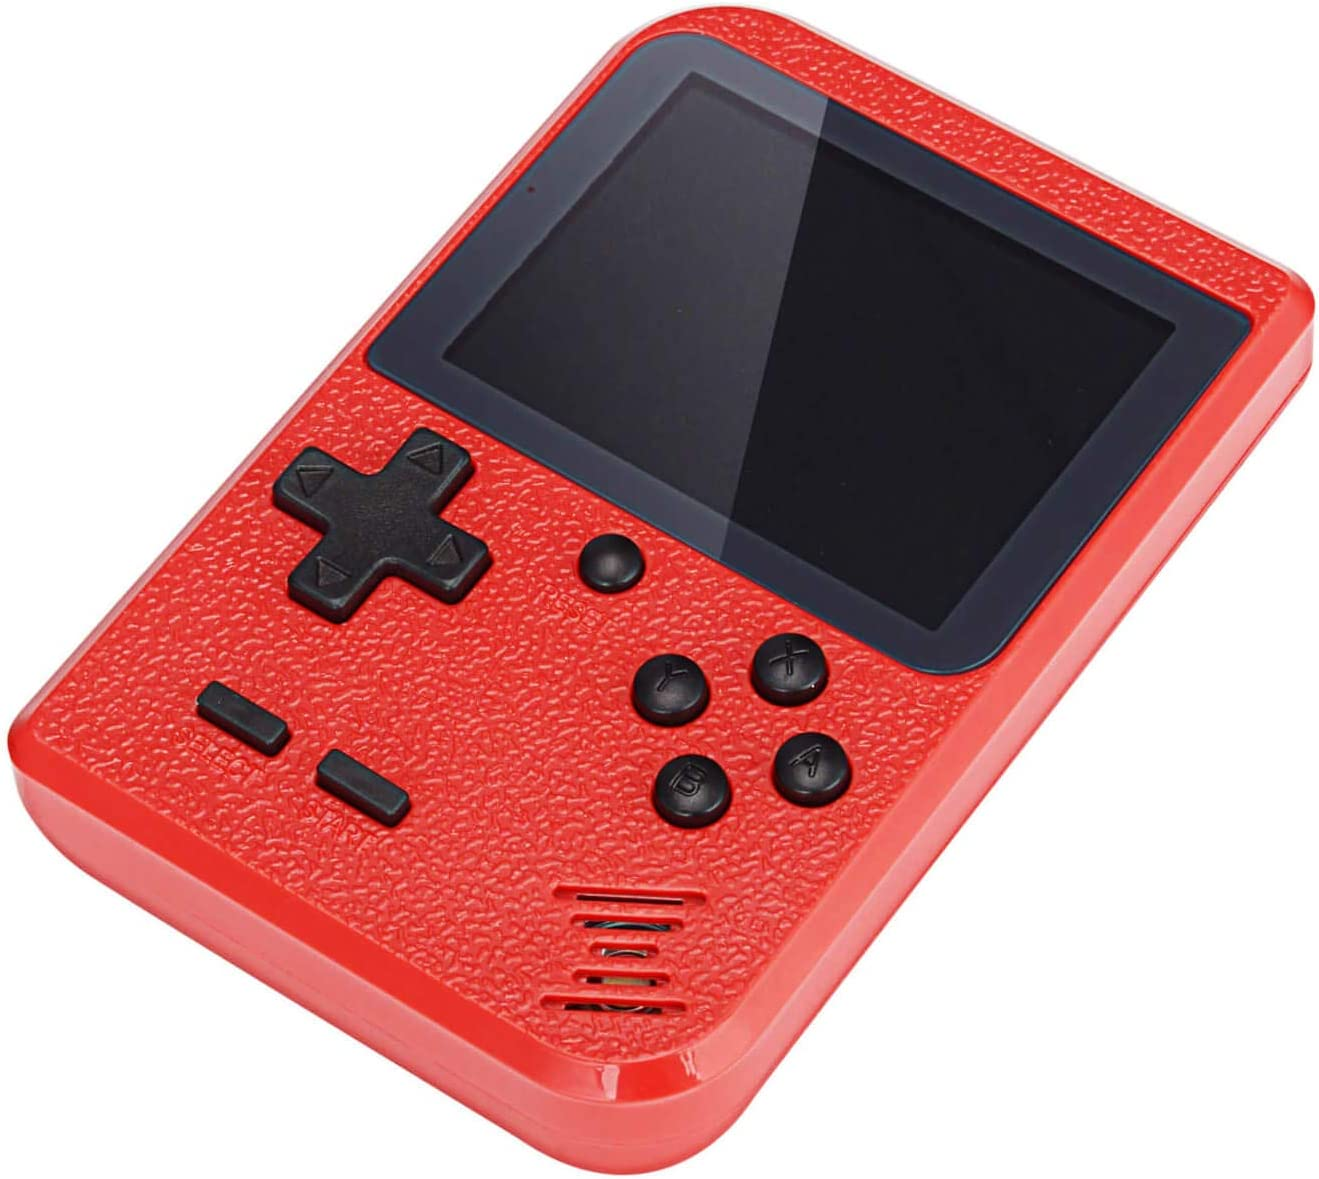 TV Video Game Retro Mini Game Player Travel Game 520 Classical FC Games 3.0 Inch Color Screen Boy Games Xmas Gift for Kids Red VanBasic Handheld Game Console